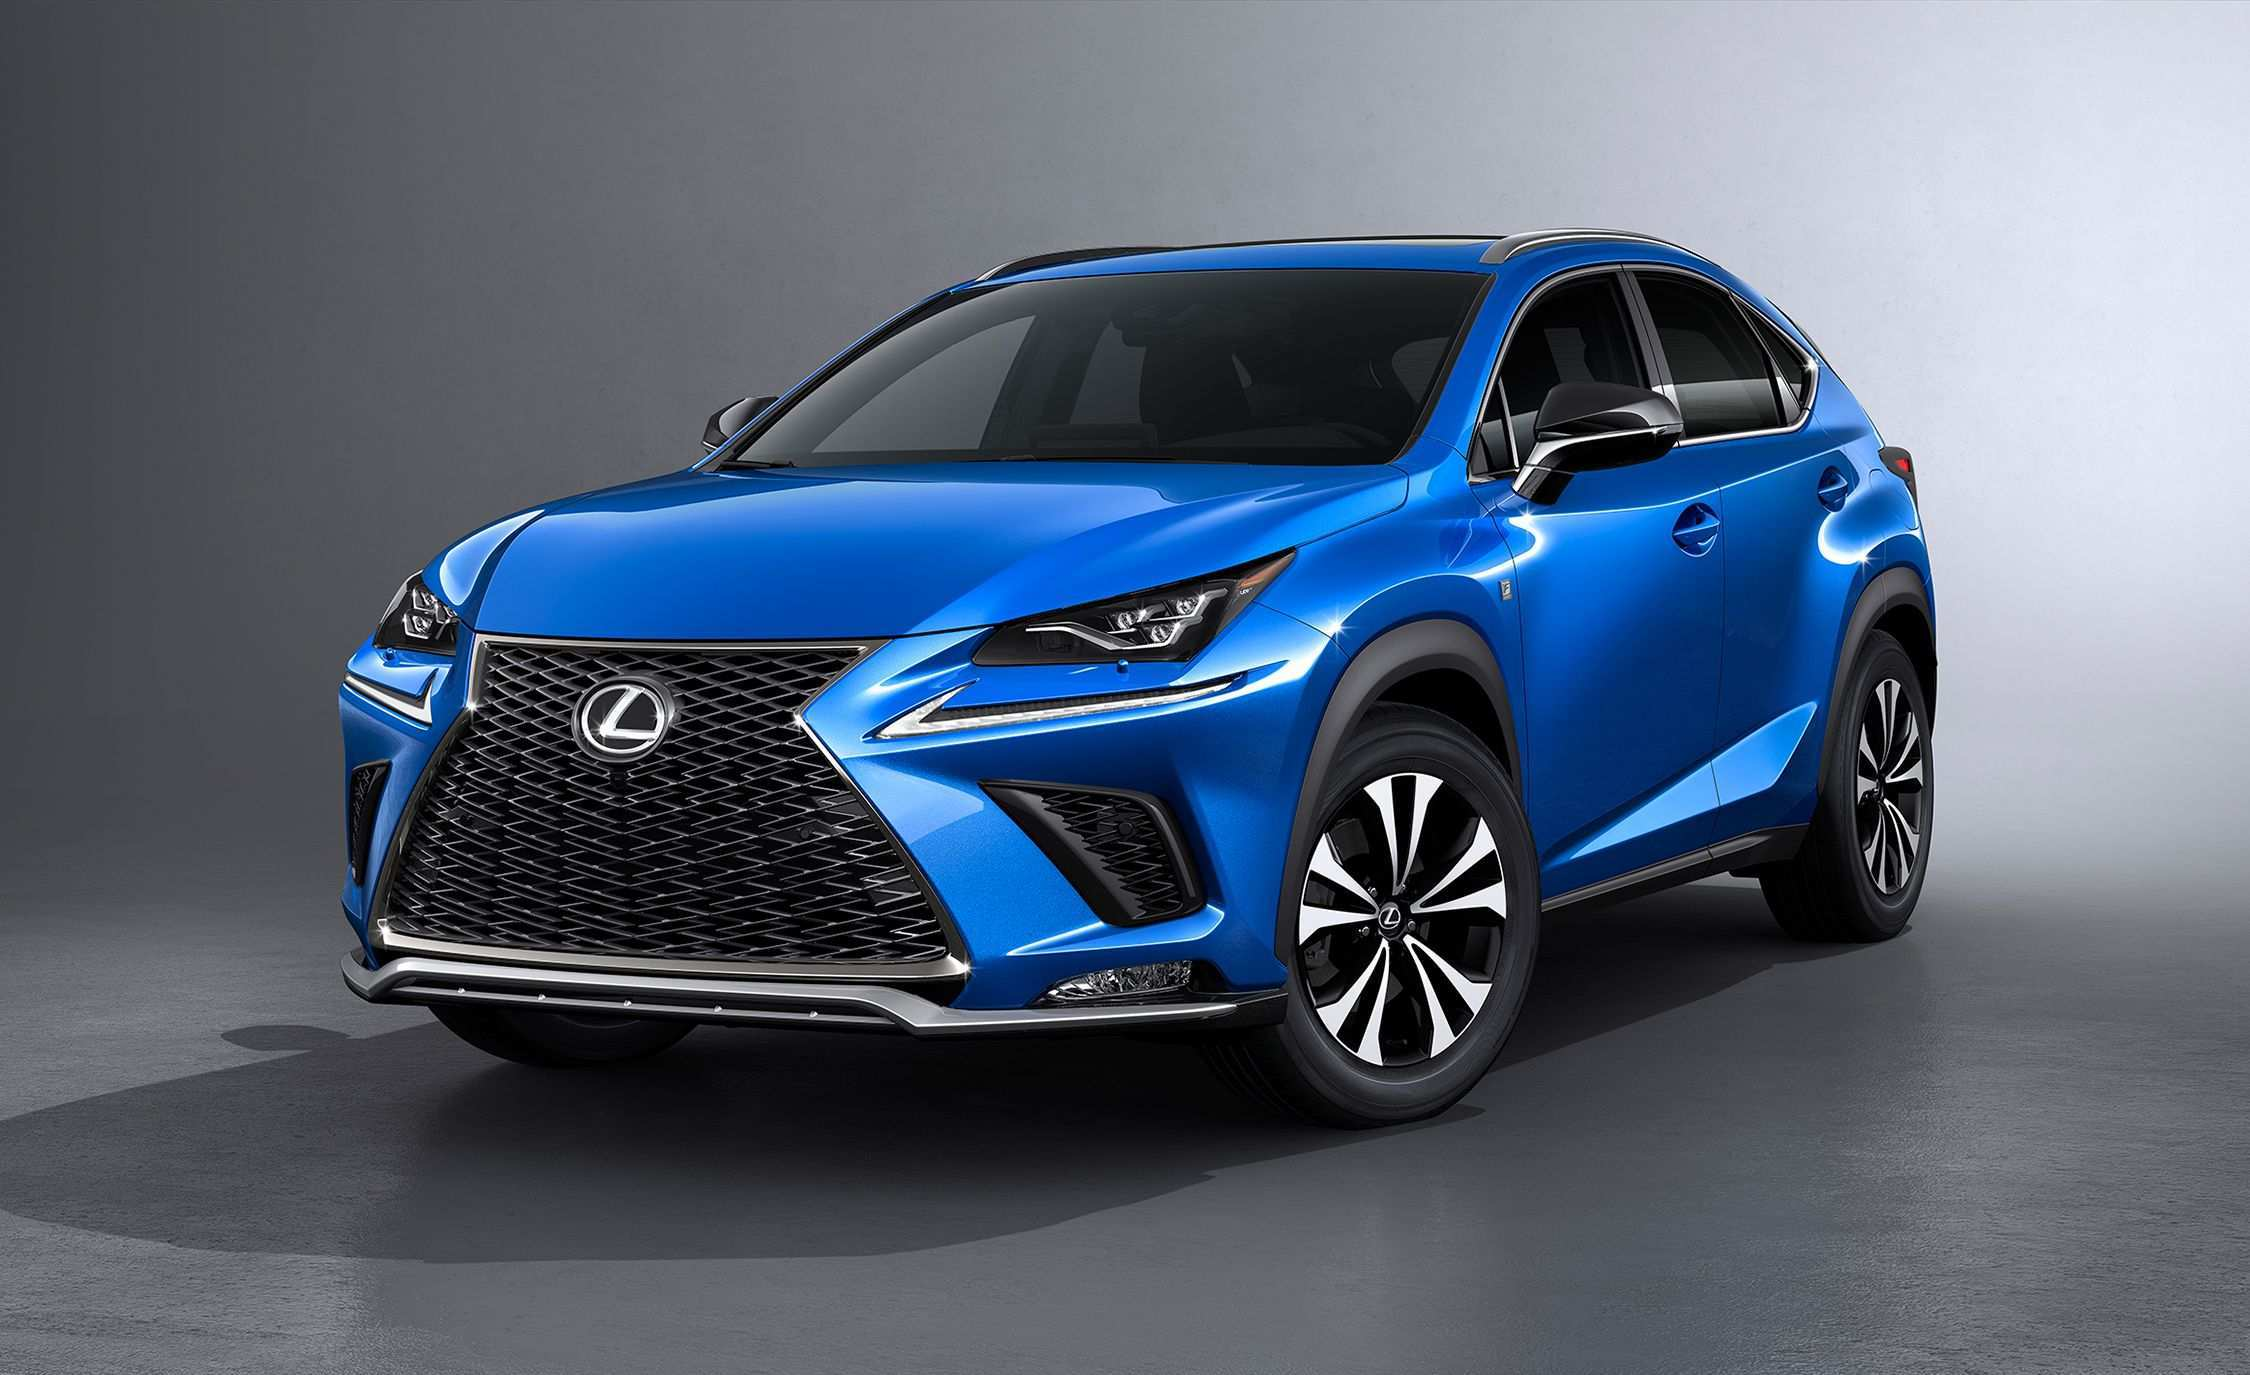 25 Great 2019 Lexus Nx200 Research New for 2019 Lexus Nx200